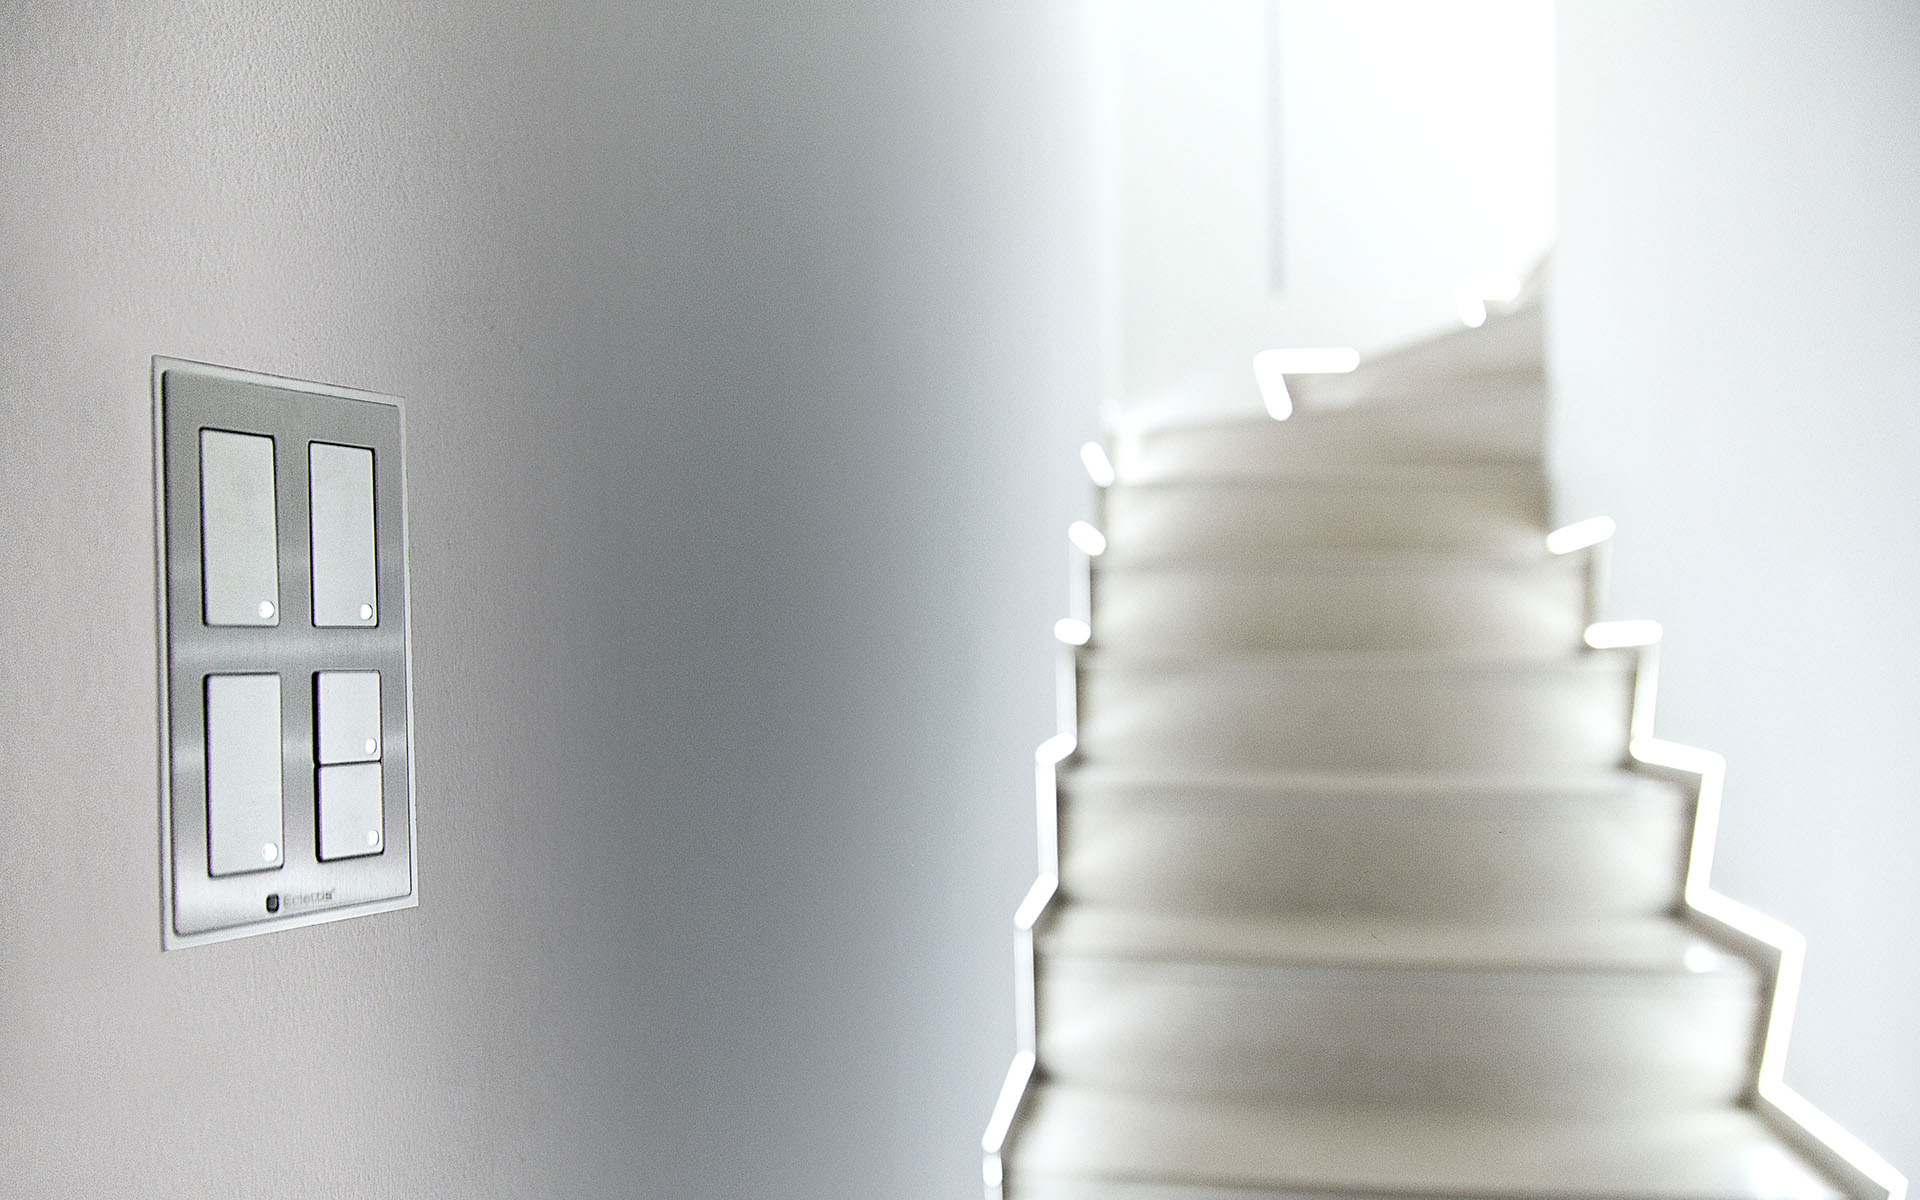 Smoothline-Flush-antitouch-switches-and-sockets-for-home-automation-